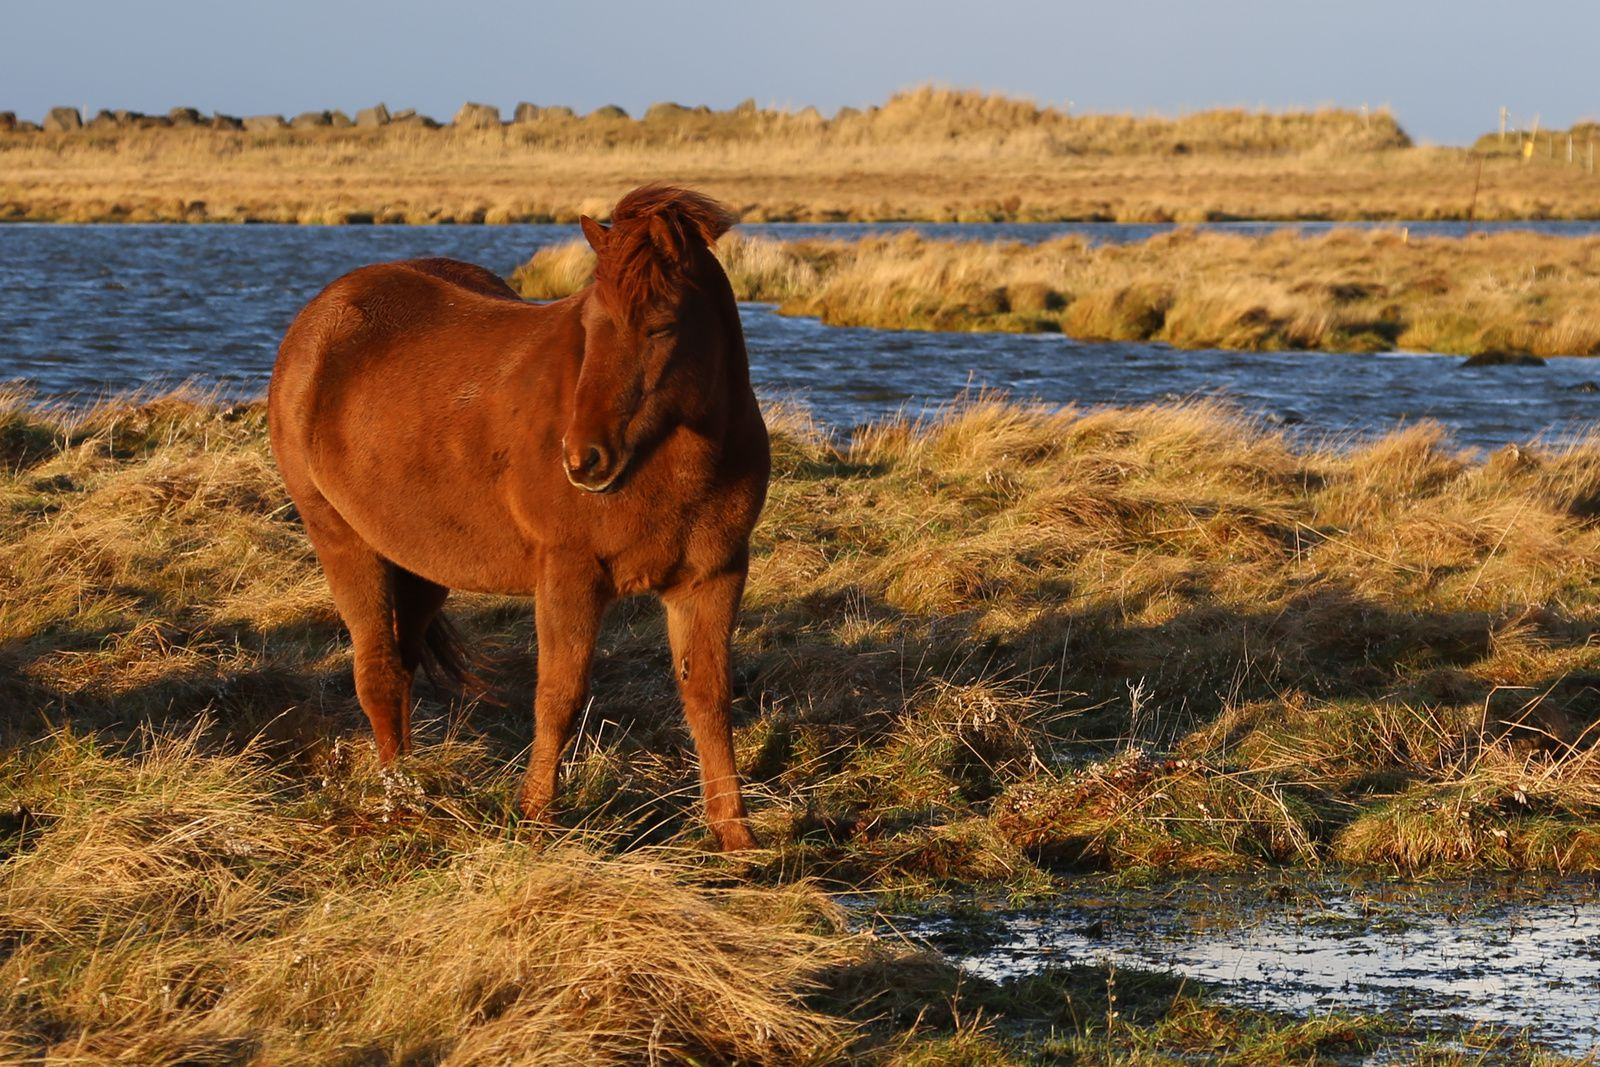 Icelandic small horses resist in all weather and in all environments - photo © Bernard Duyck 10.2016